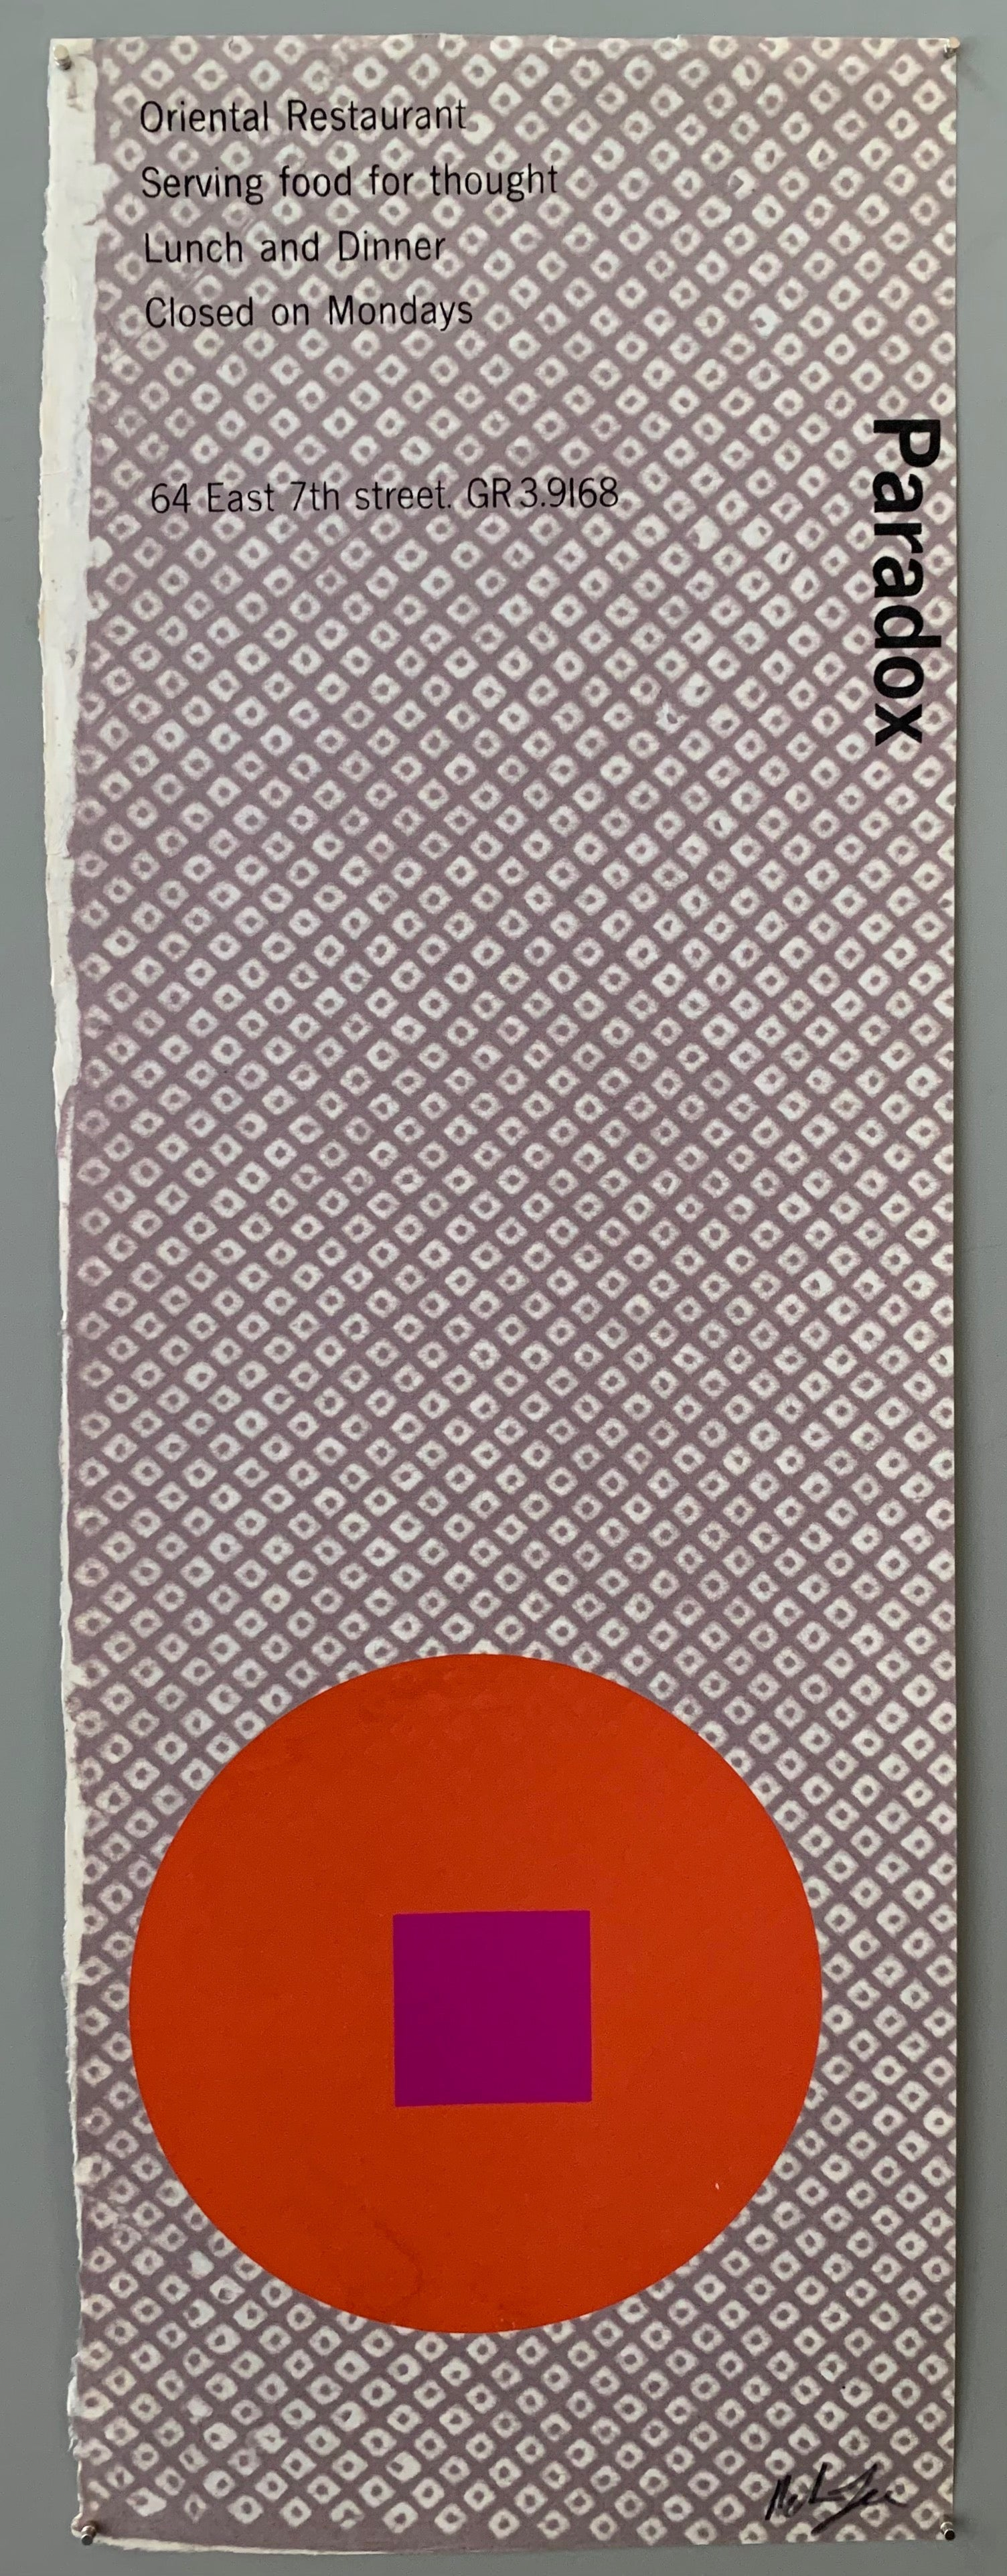 A red circle with an purple square on a white and blue hatch patterned paper.